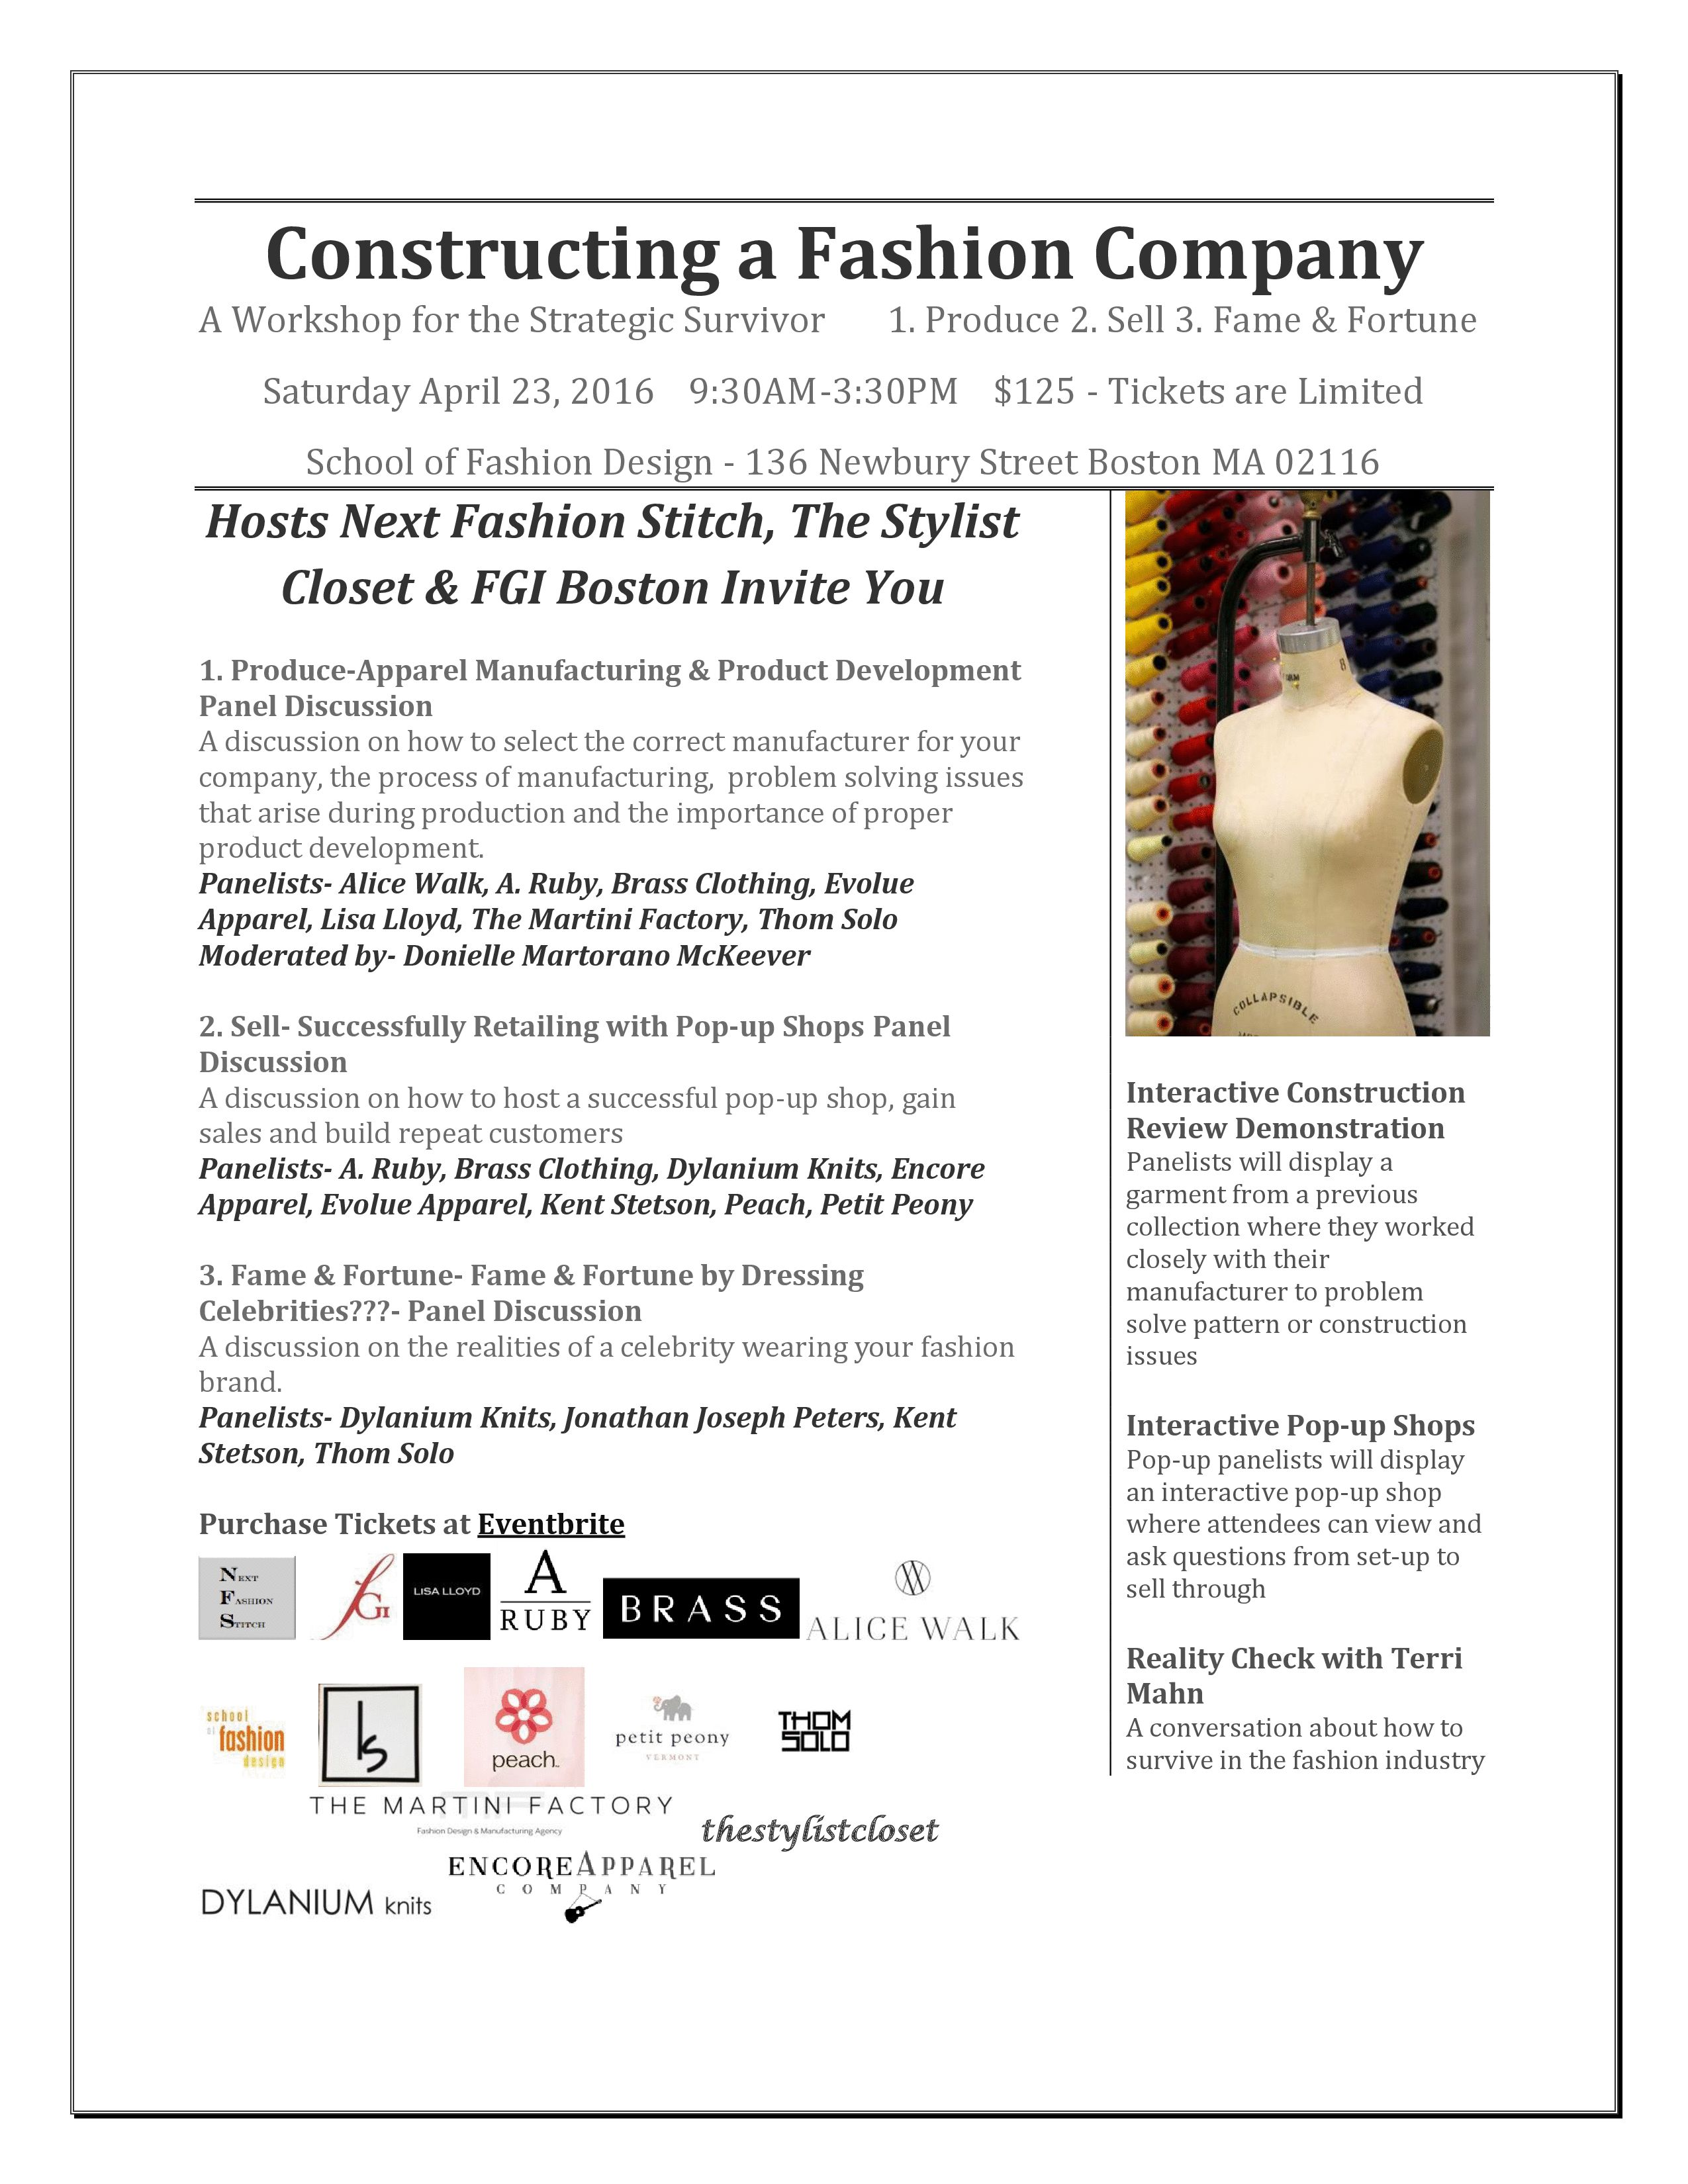 Constructing A Fashion Company A Workshop For The Strategic Survivor 04 23 16